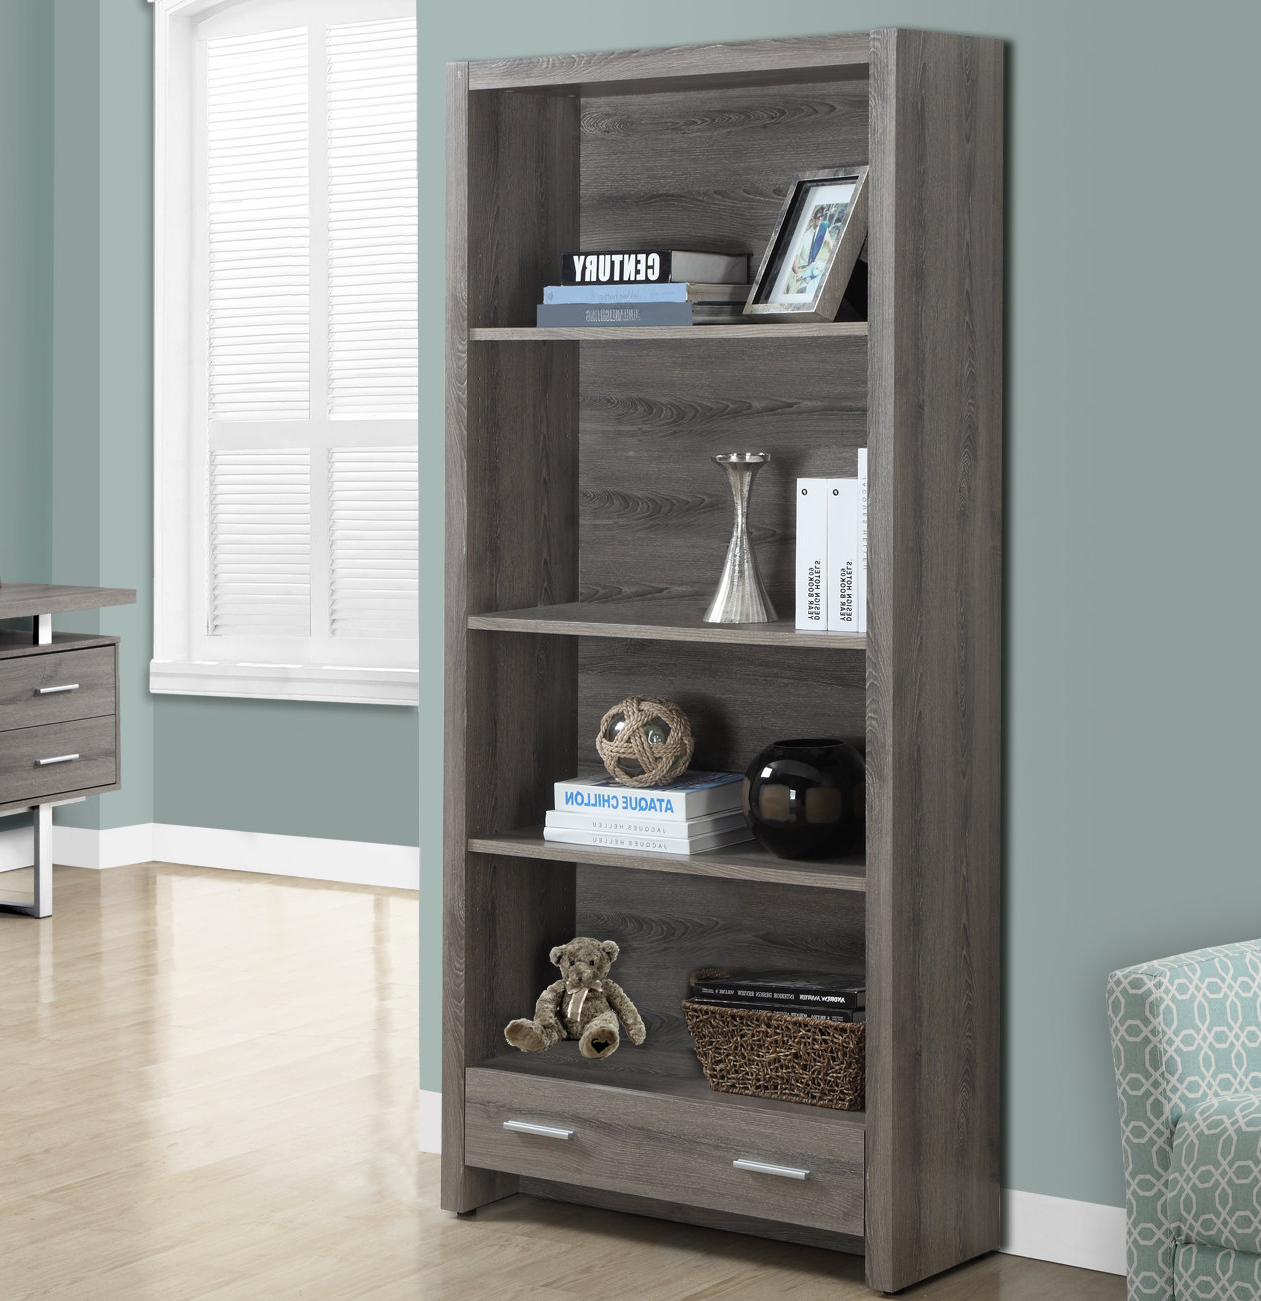 Fashionable Kiley Standard Bookcases Regarding Tressler Standard Bookcase (View 6 of 20)